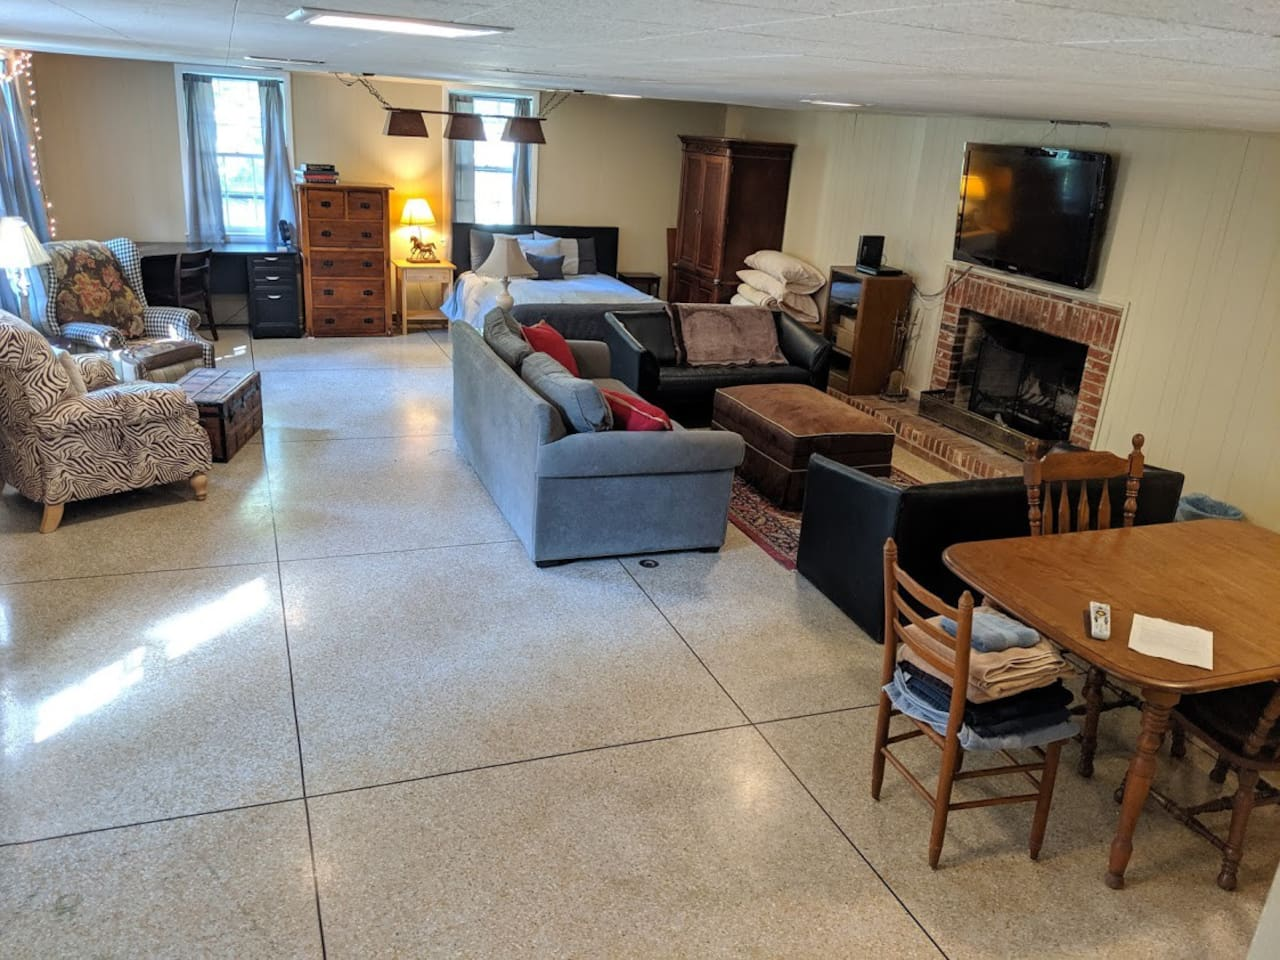 1100+ sq ft of living space and comfortable furniture